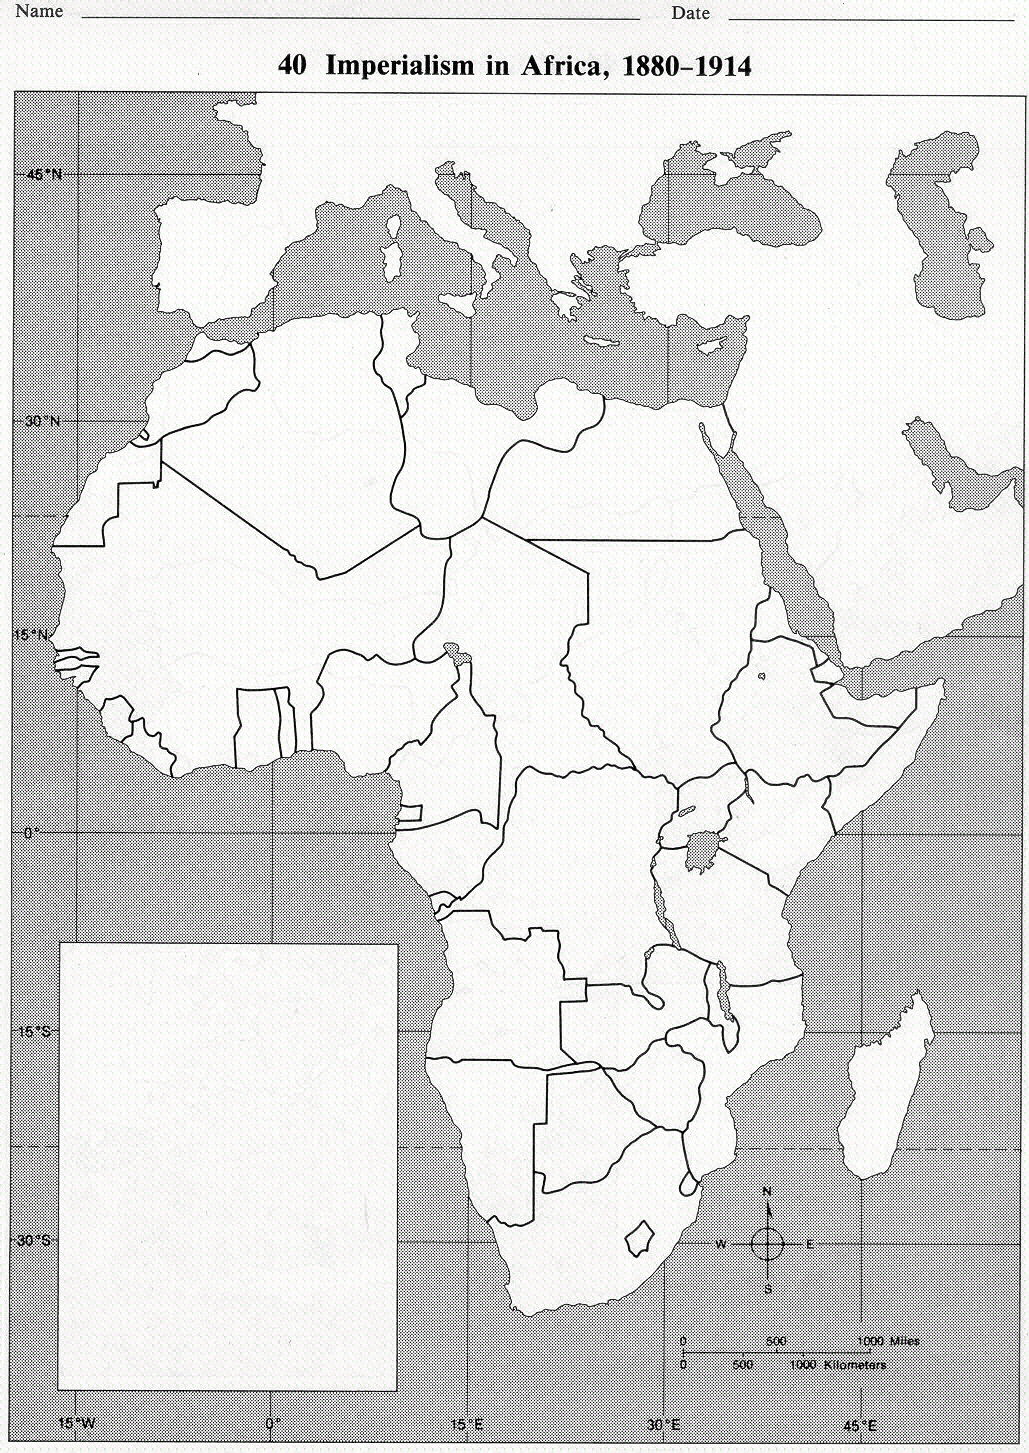 imperialism in africa 1880 1914 Quotes